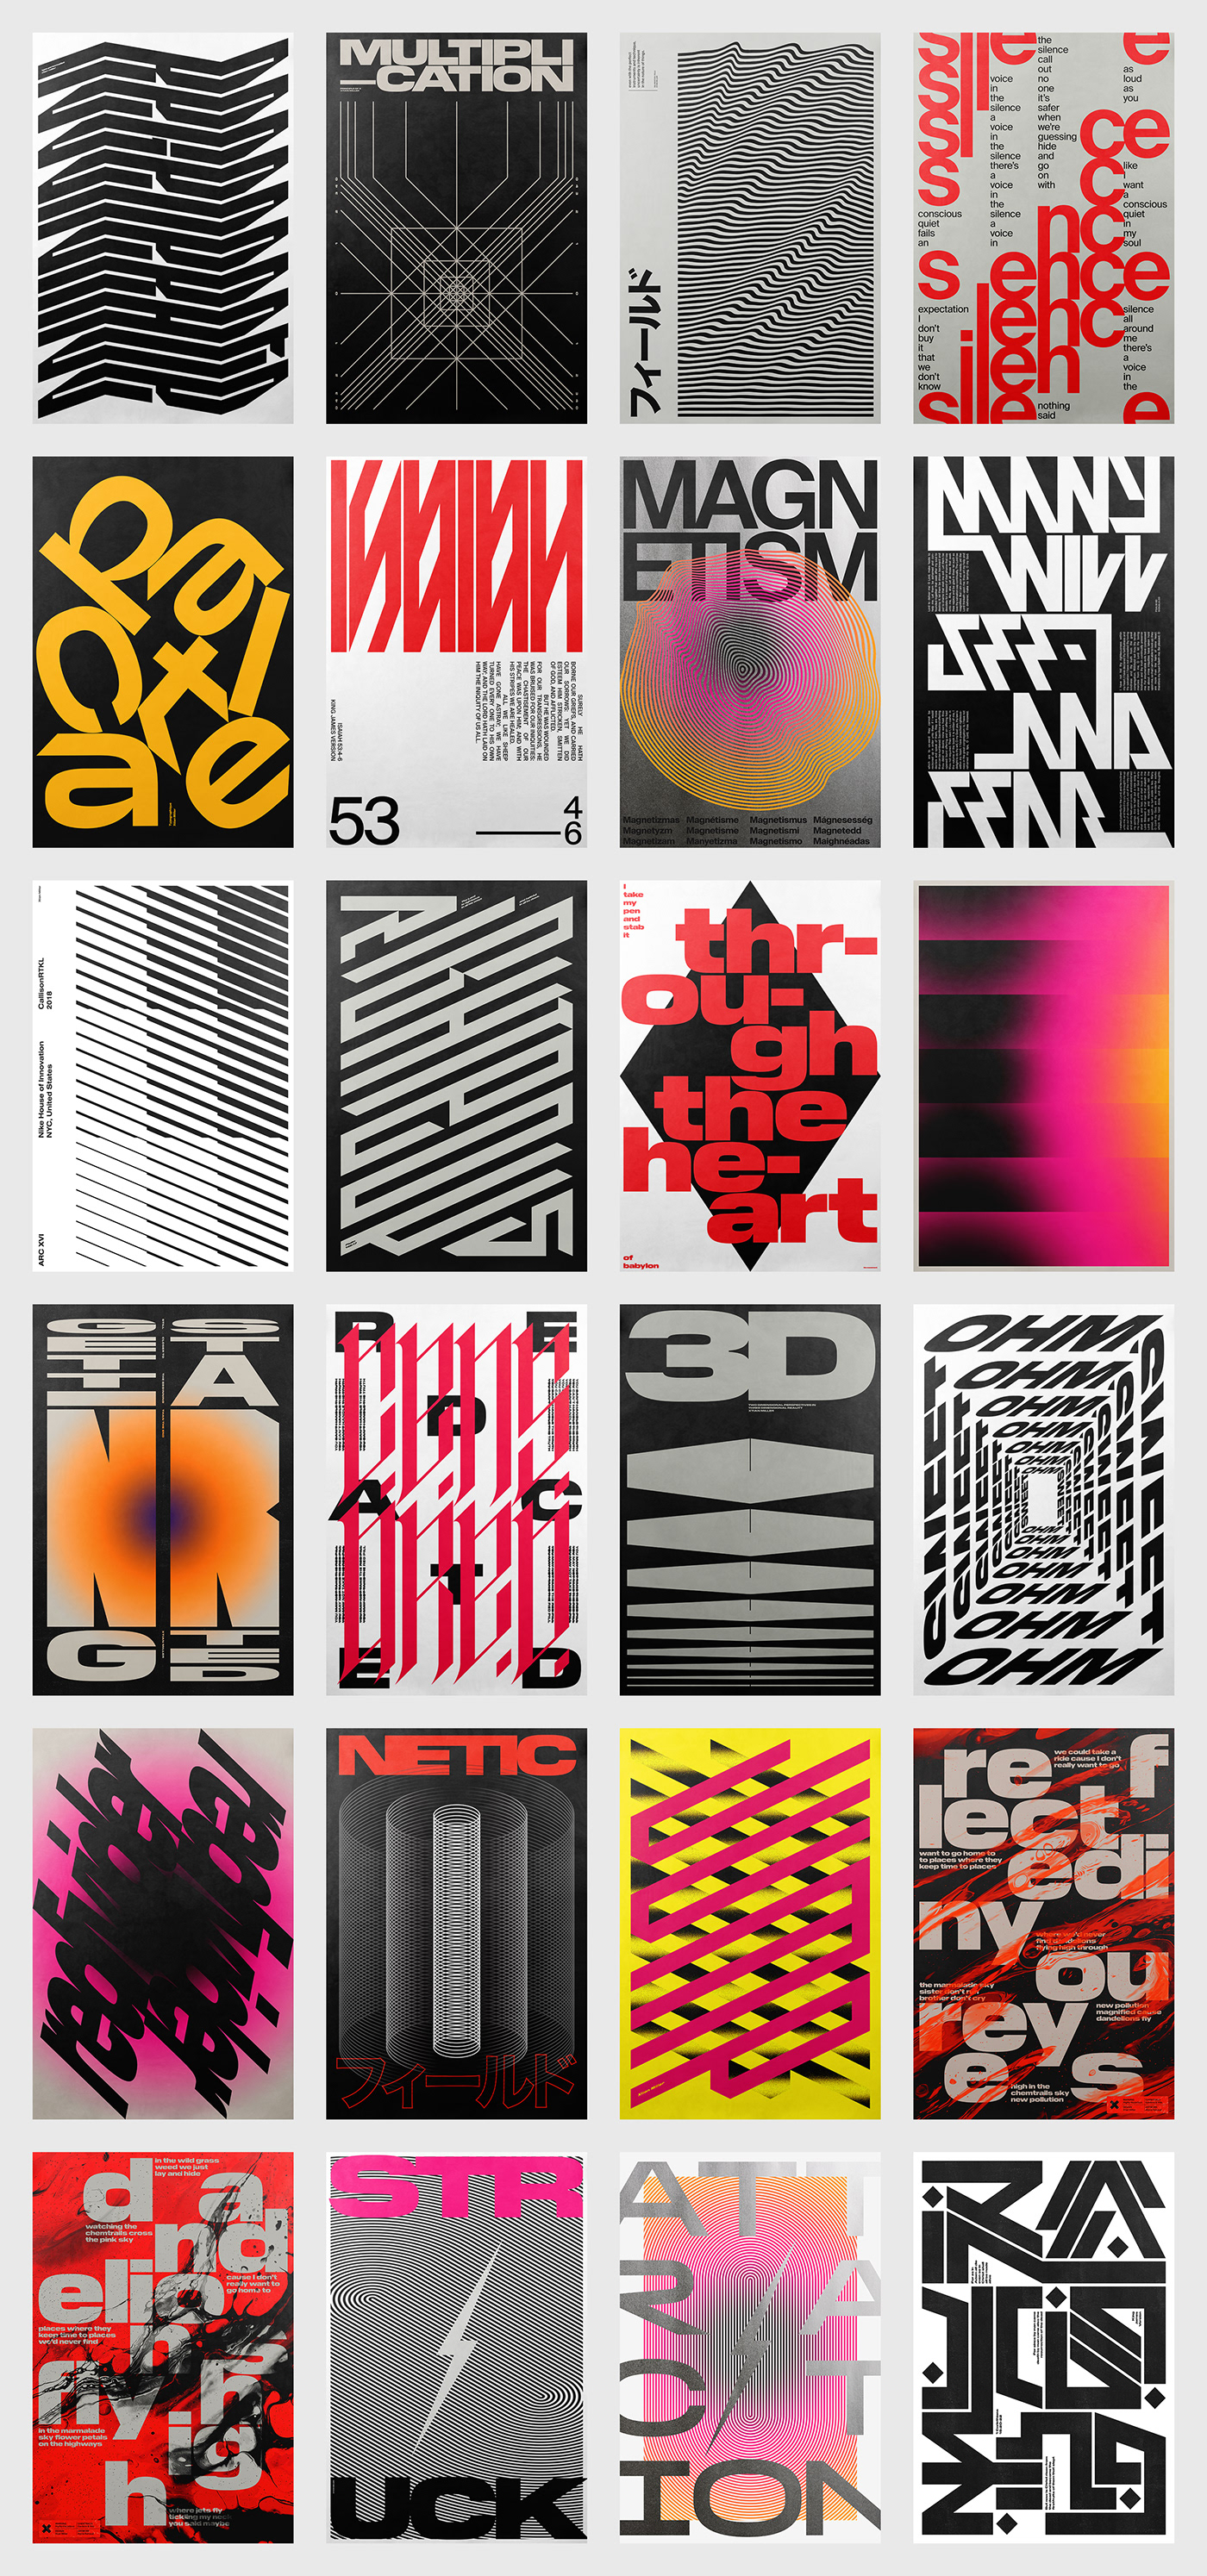 Selected posters from 2019 by Xtian Miller